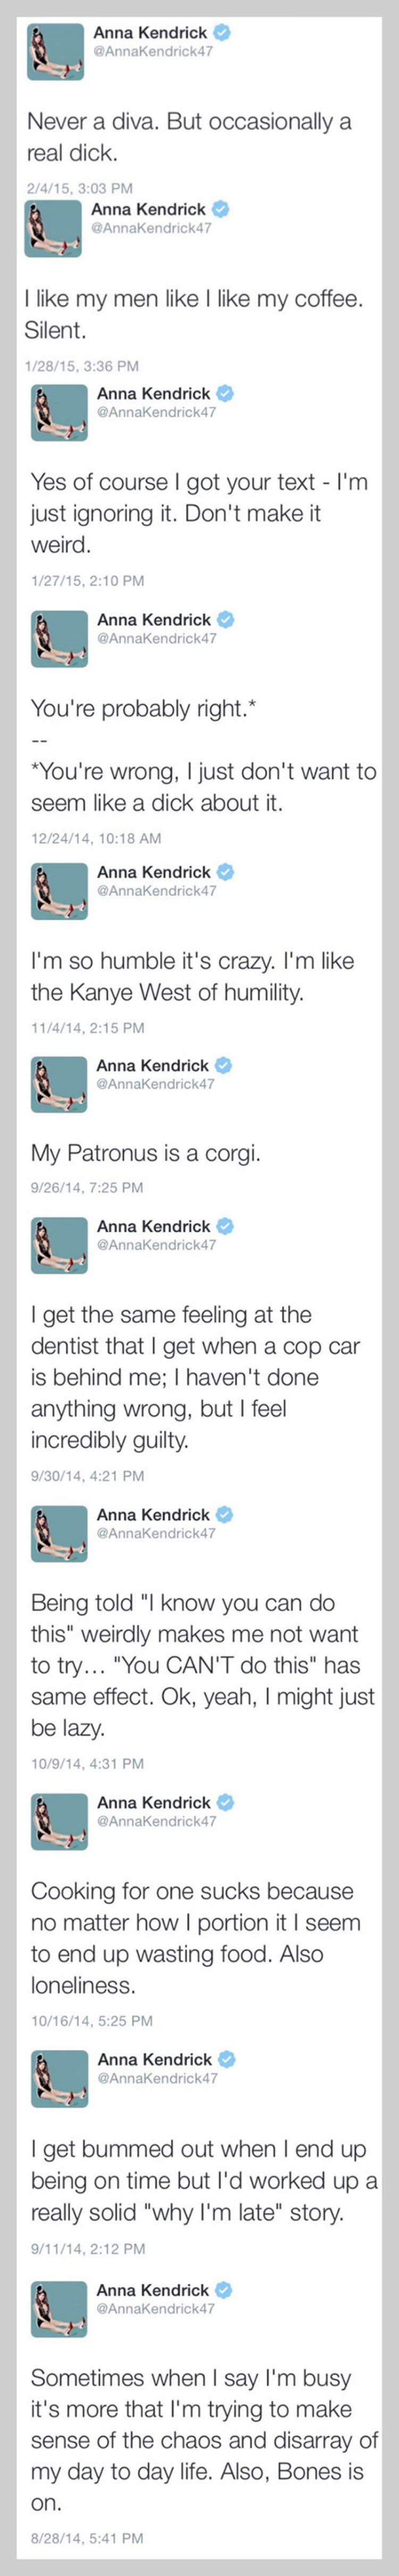 anna kendrick twitter funny picture